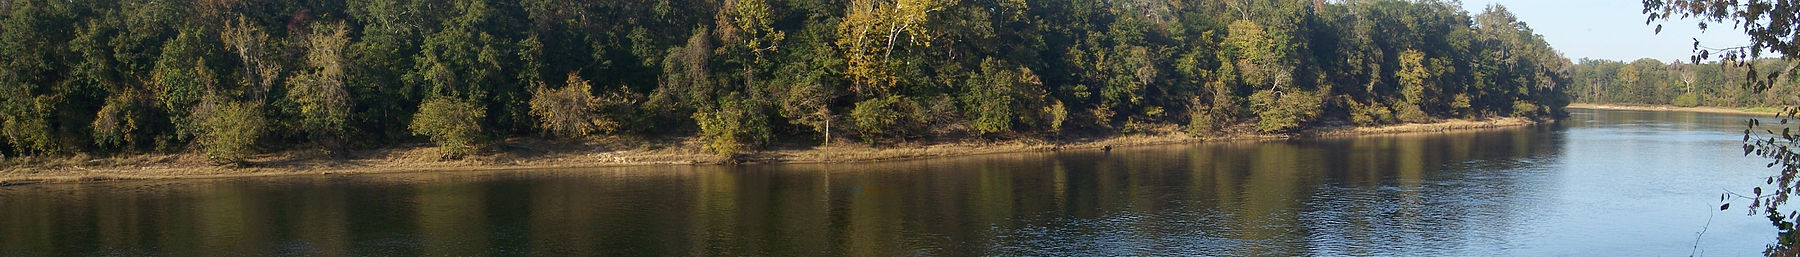 The Apalachicola River in Torreya State Park